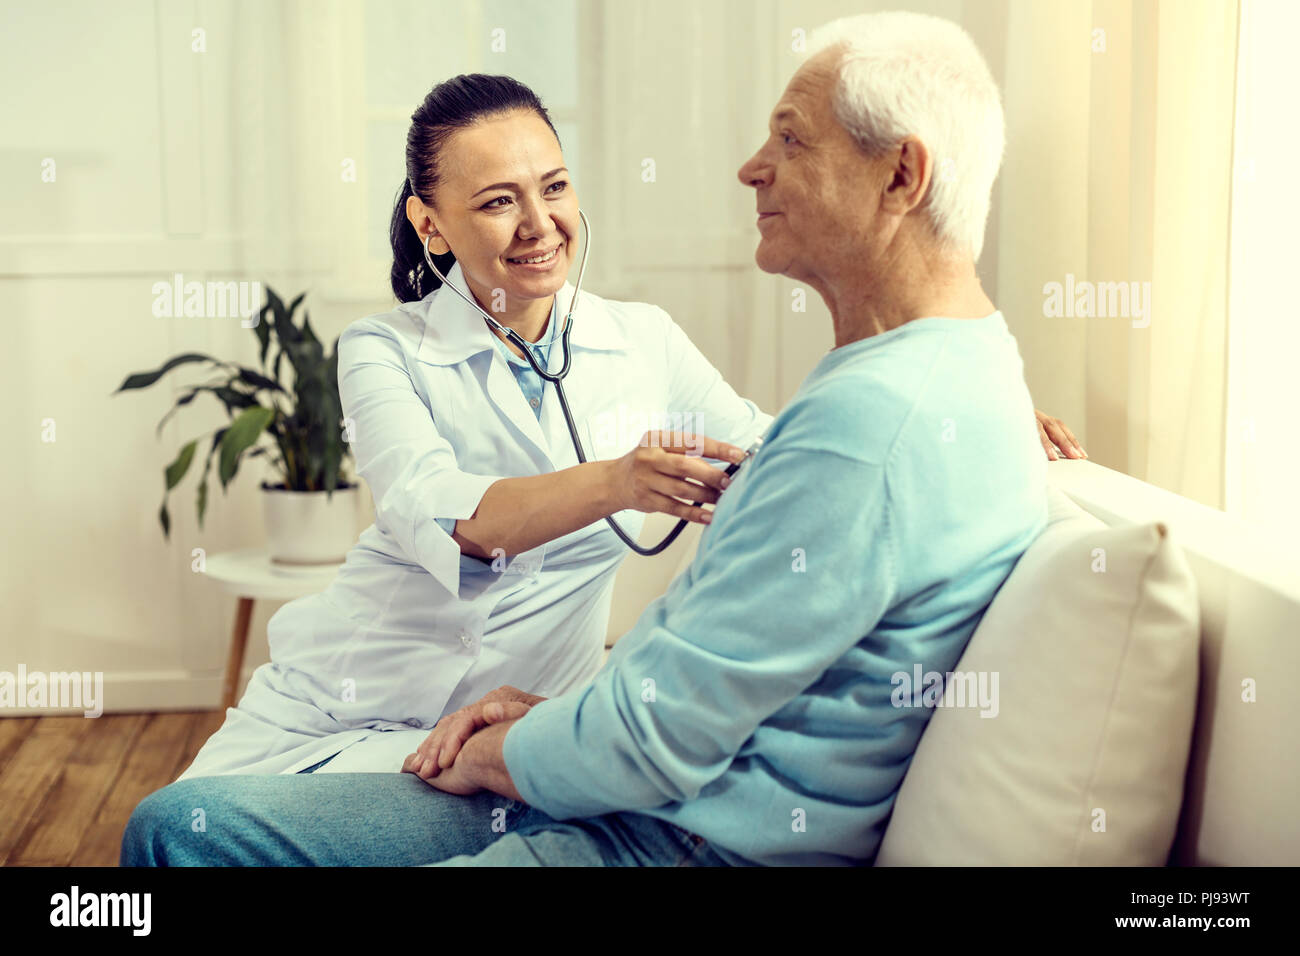 Cheerful doctor using stethoscope for checking lungs of elderly man - Stock Image